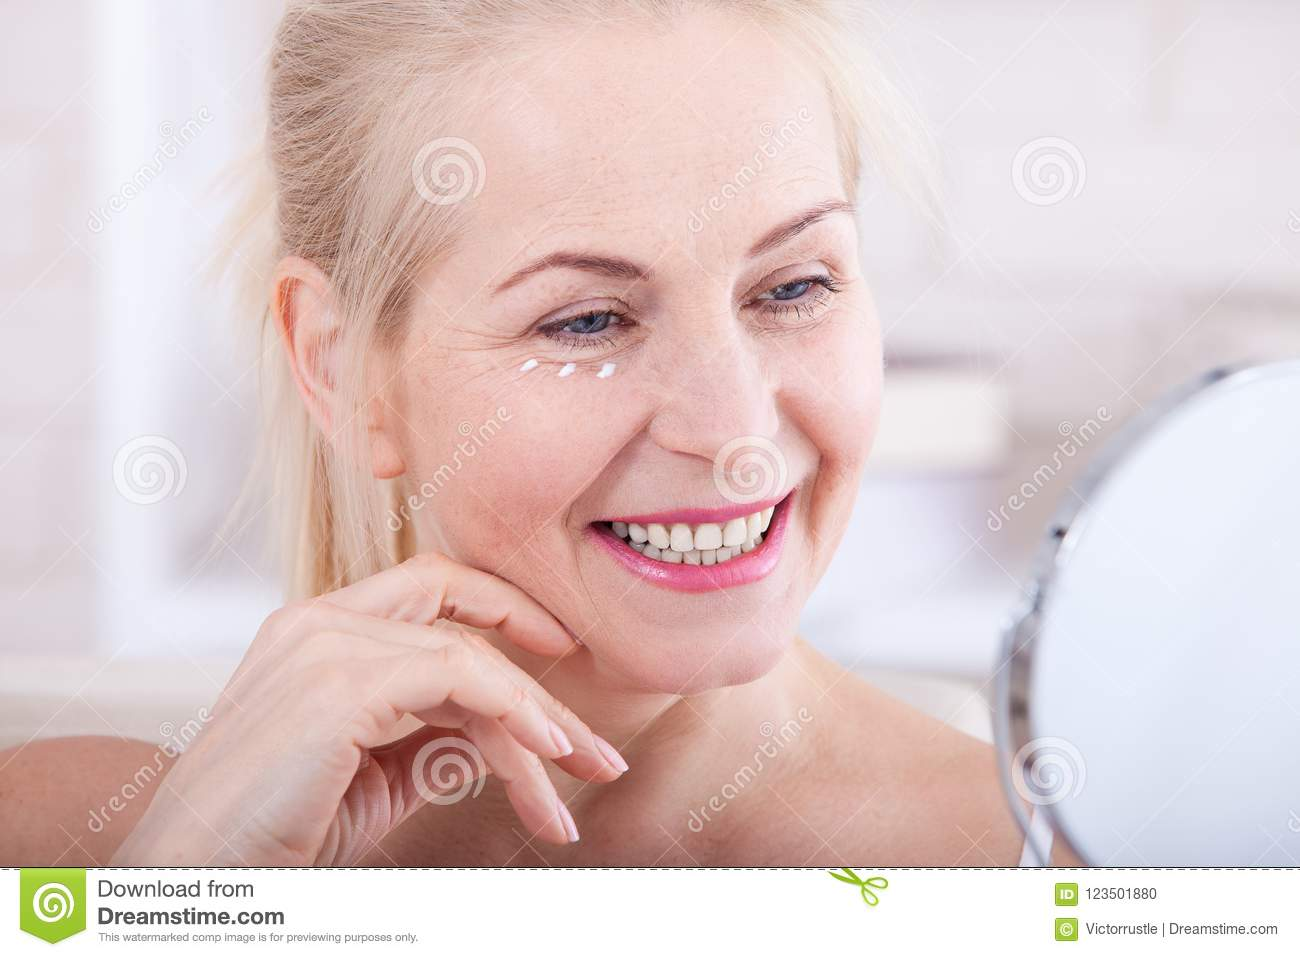 Middle aged woman looking at wrinkles in mirror. Plastic surgery and collagen injections. Makeup